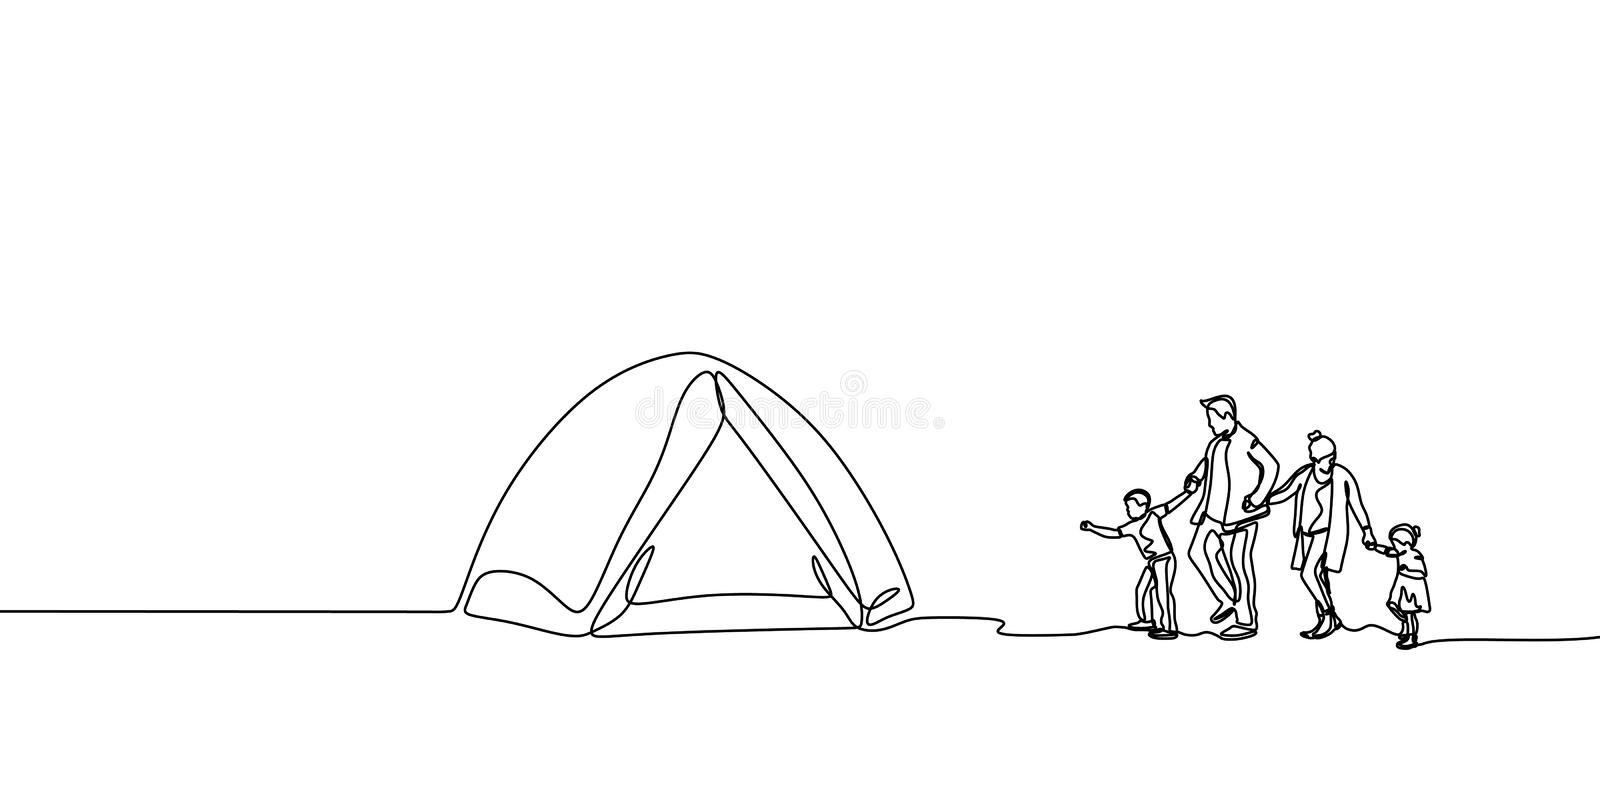 Family Camping Stock Illustrations